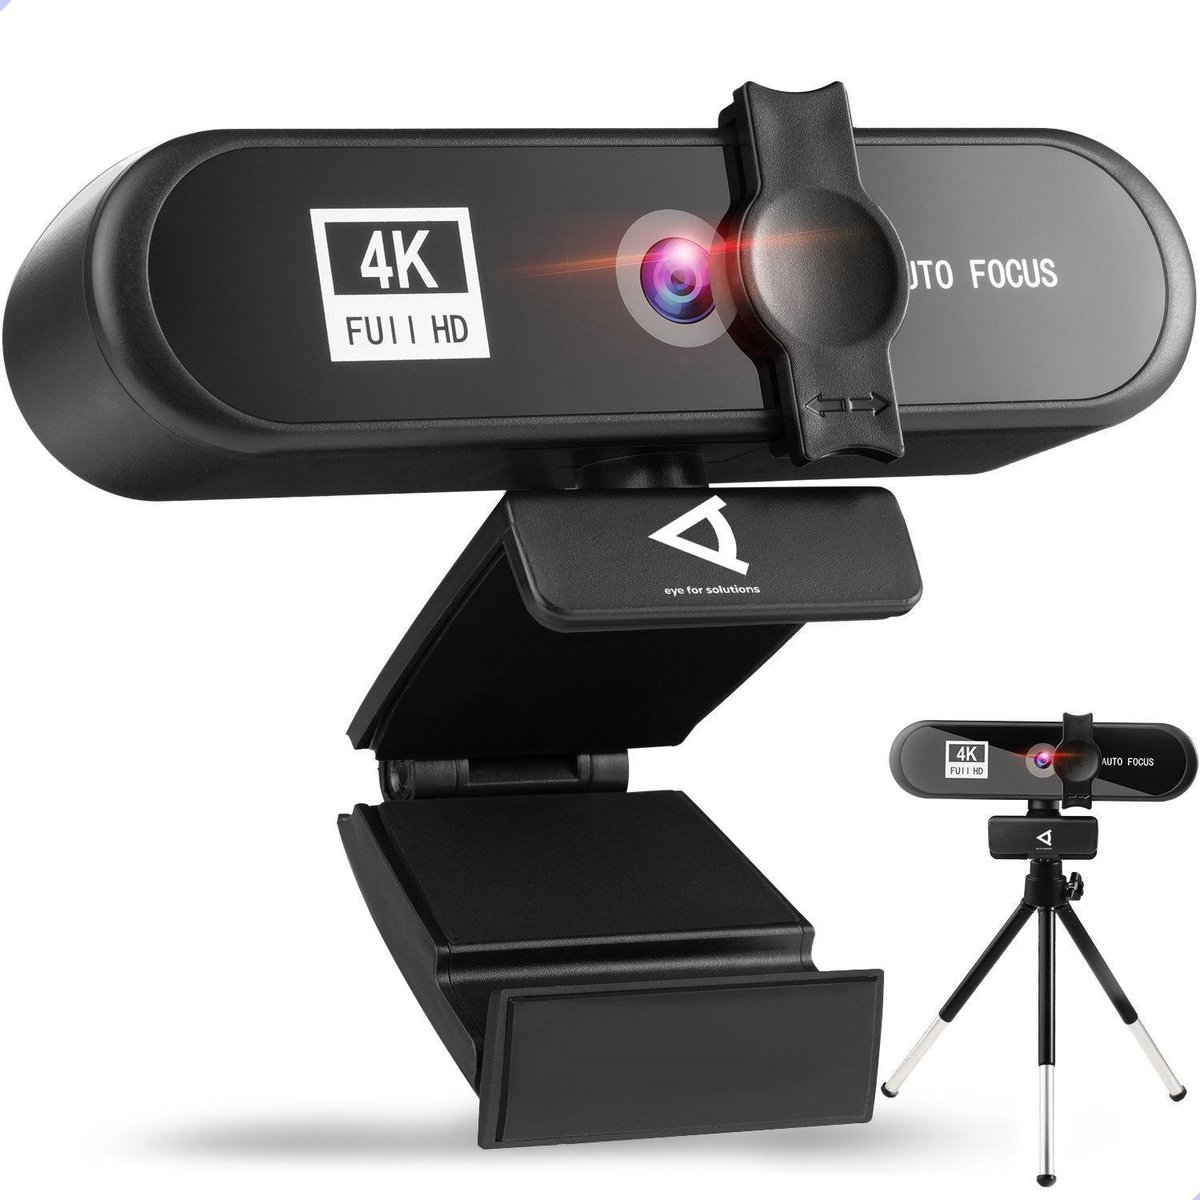 4K Webcam - Ingebouwde microfoon - Inclusief tripod - 3840*2160/30FPS - Inclusief privacy cover - Eye For Solutions